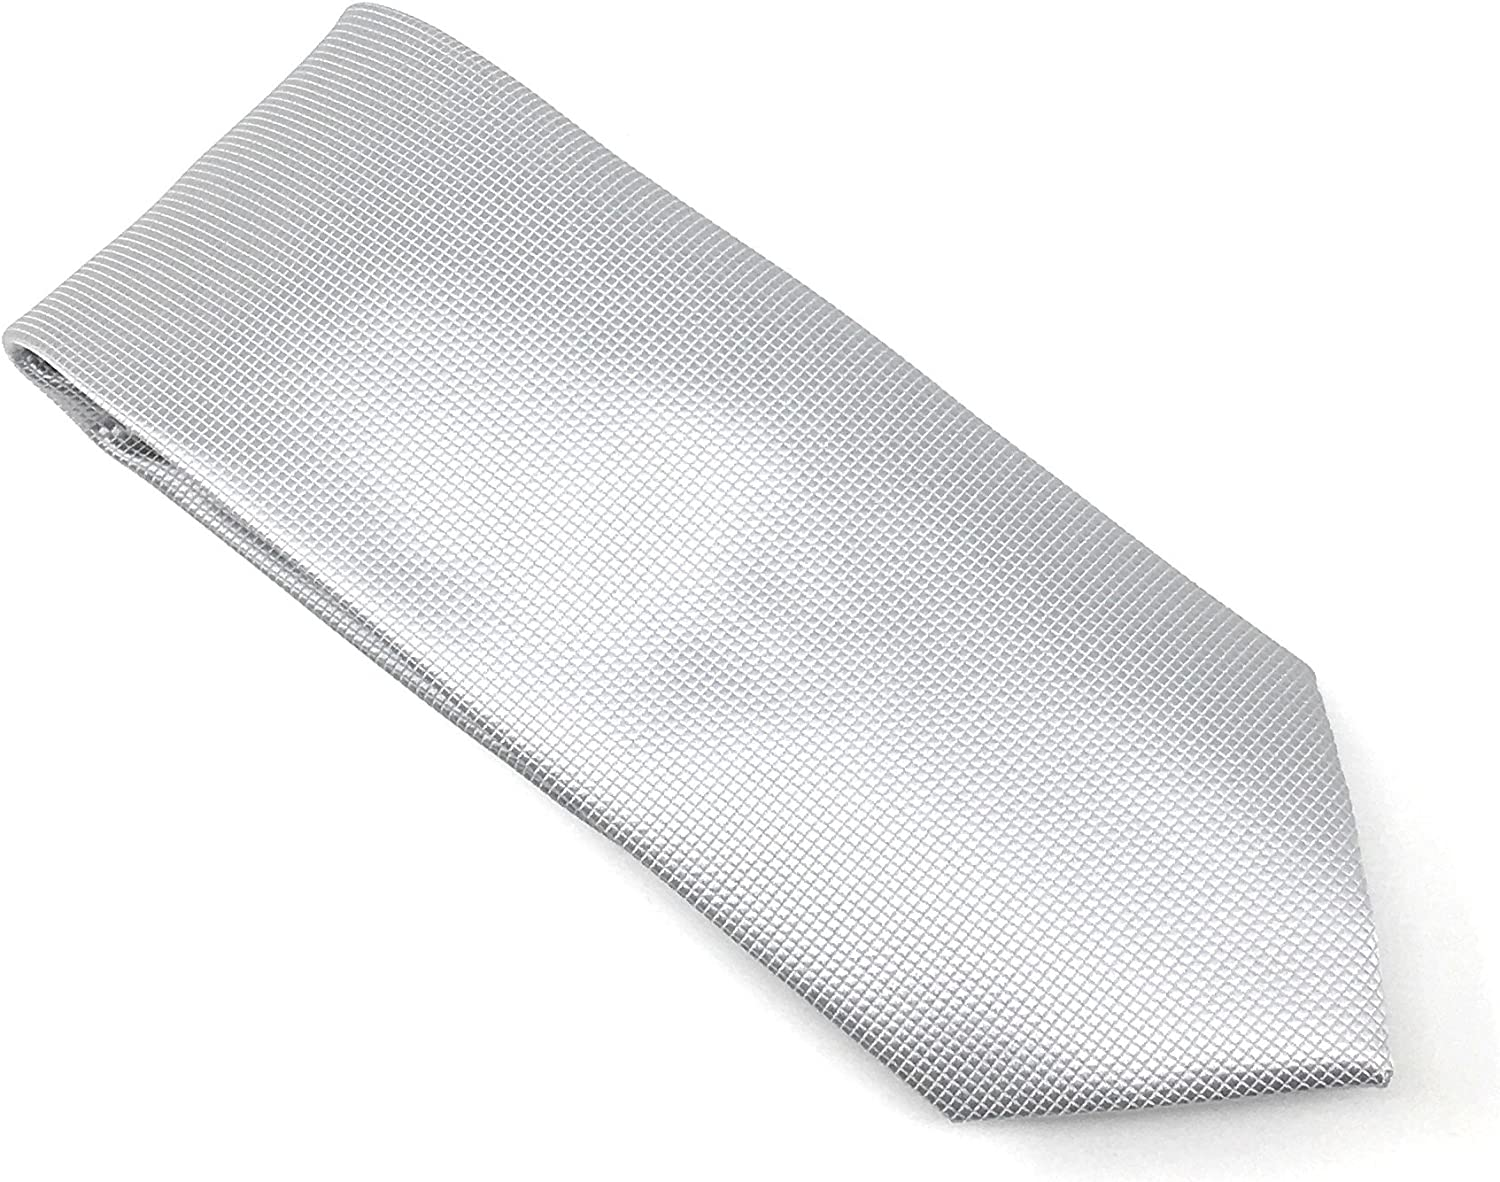 Ice Pindot 100% Silk Woven Necktie Set with Pocket Square